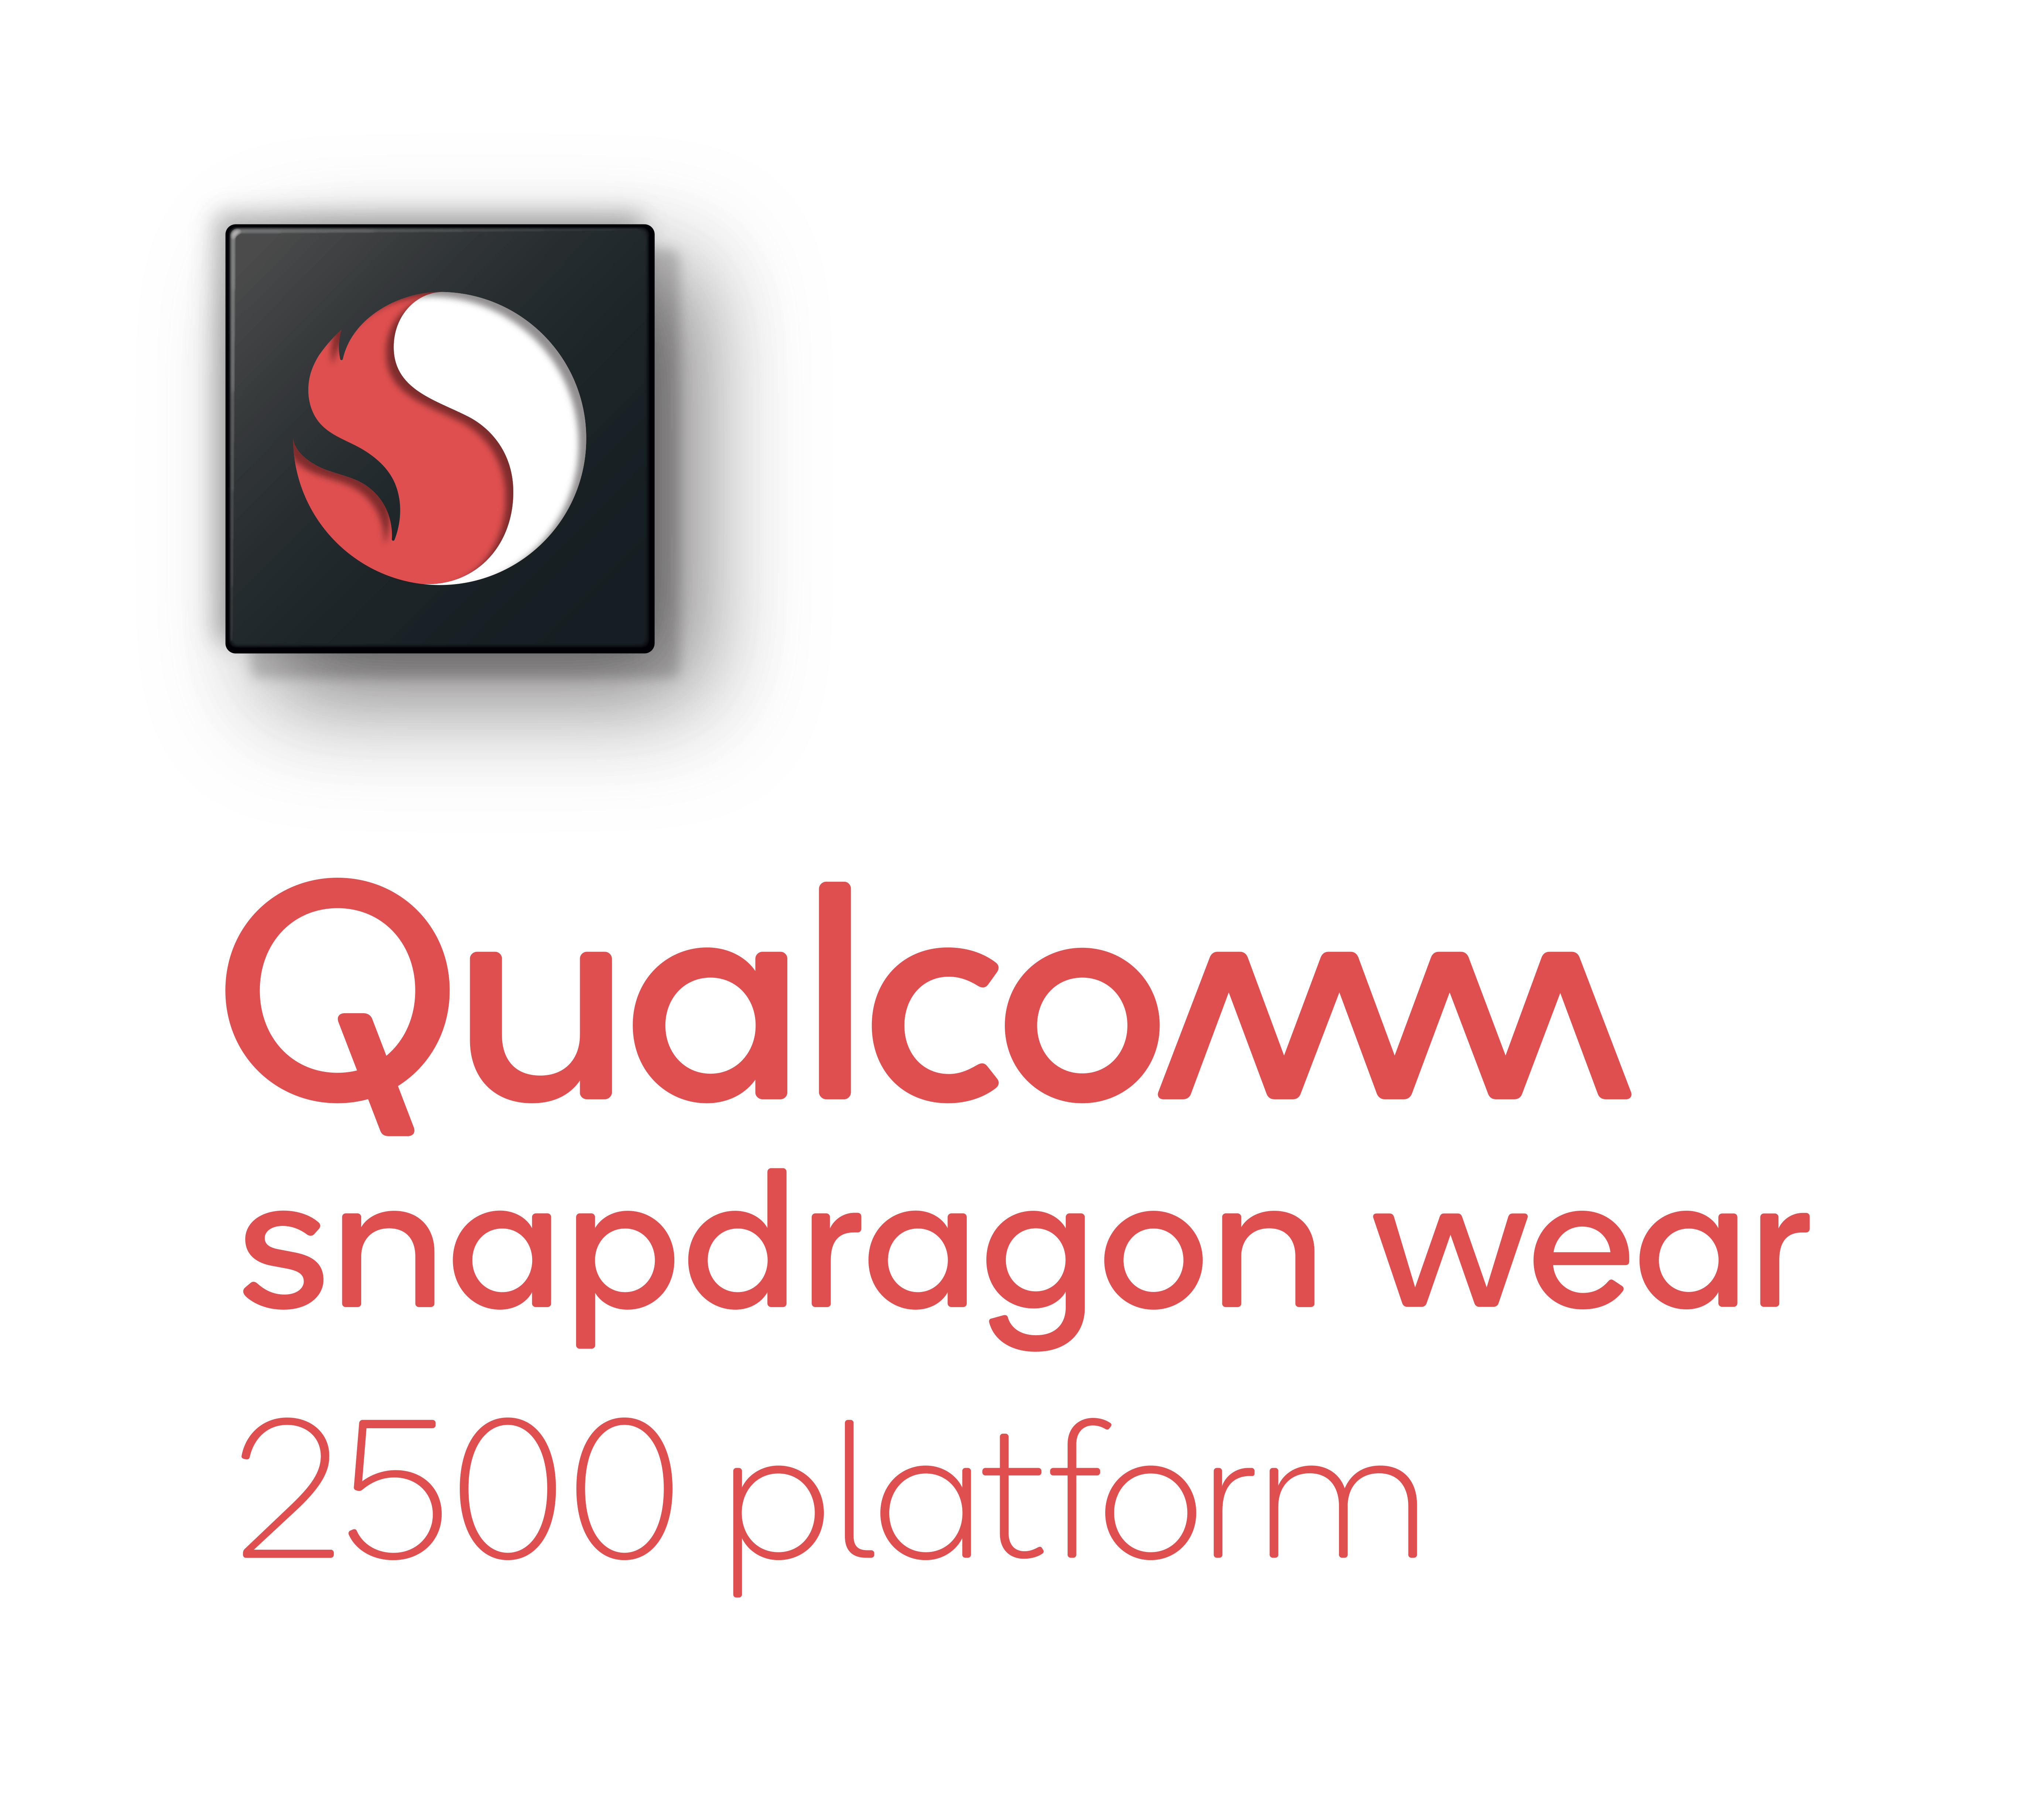 Qualcomm Logo - MWC Shanghai 2018 Press Kit | Qualcomm